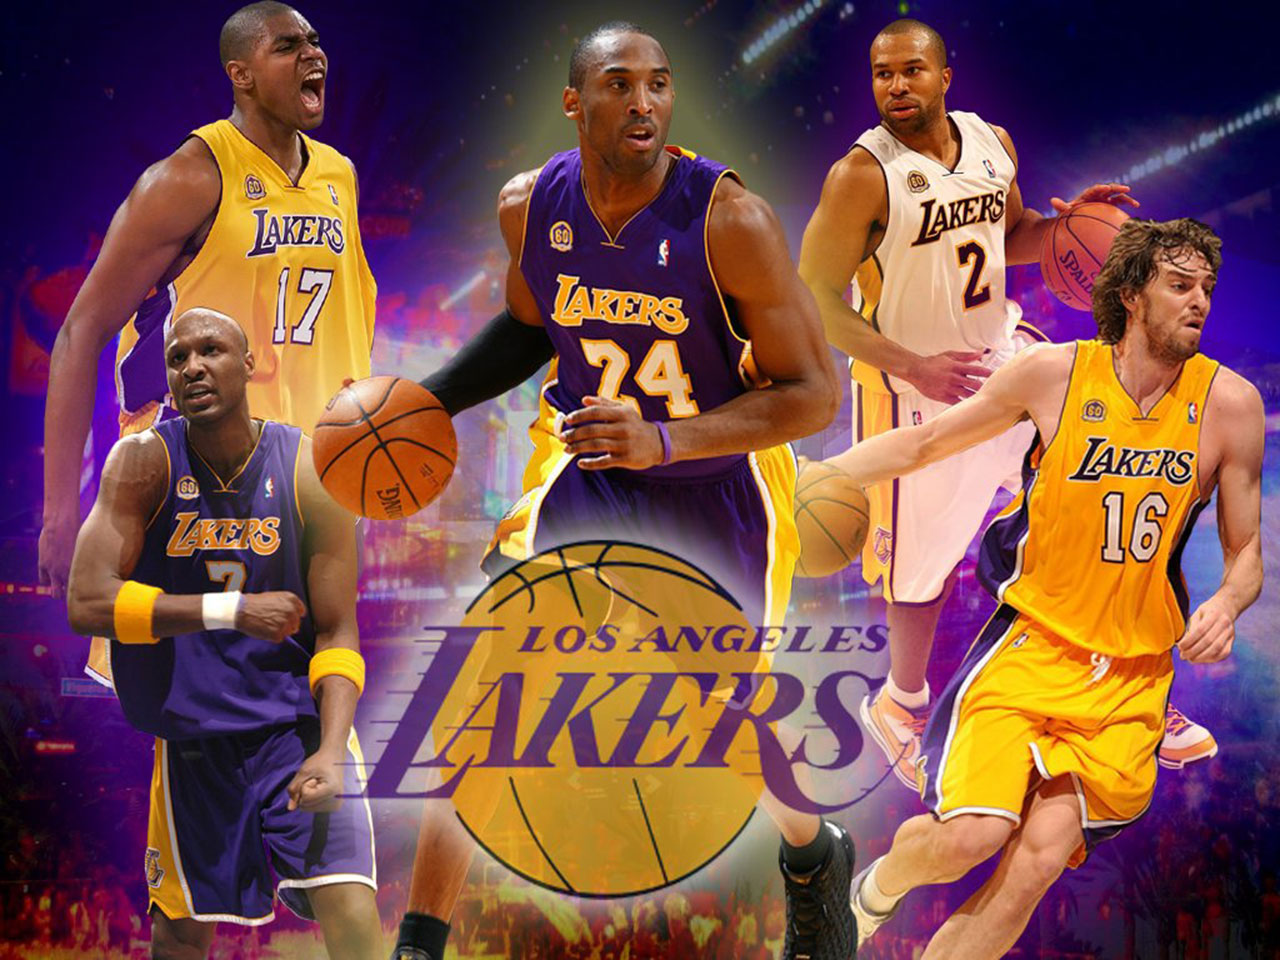 second lakers wallpaper is wallpaper of lakers starting 5 for season